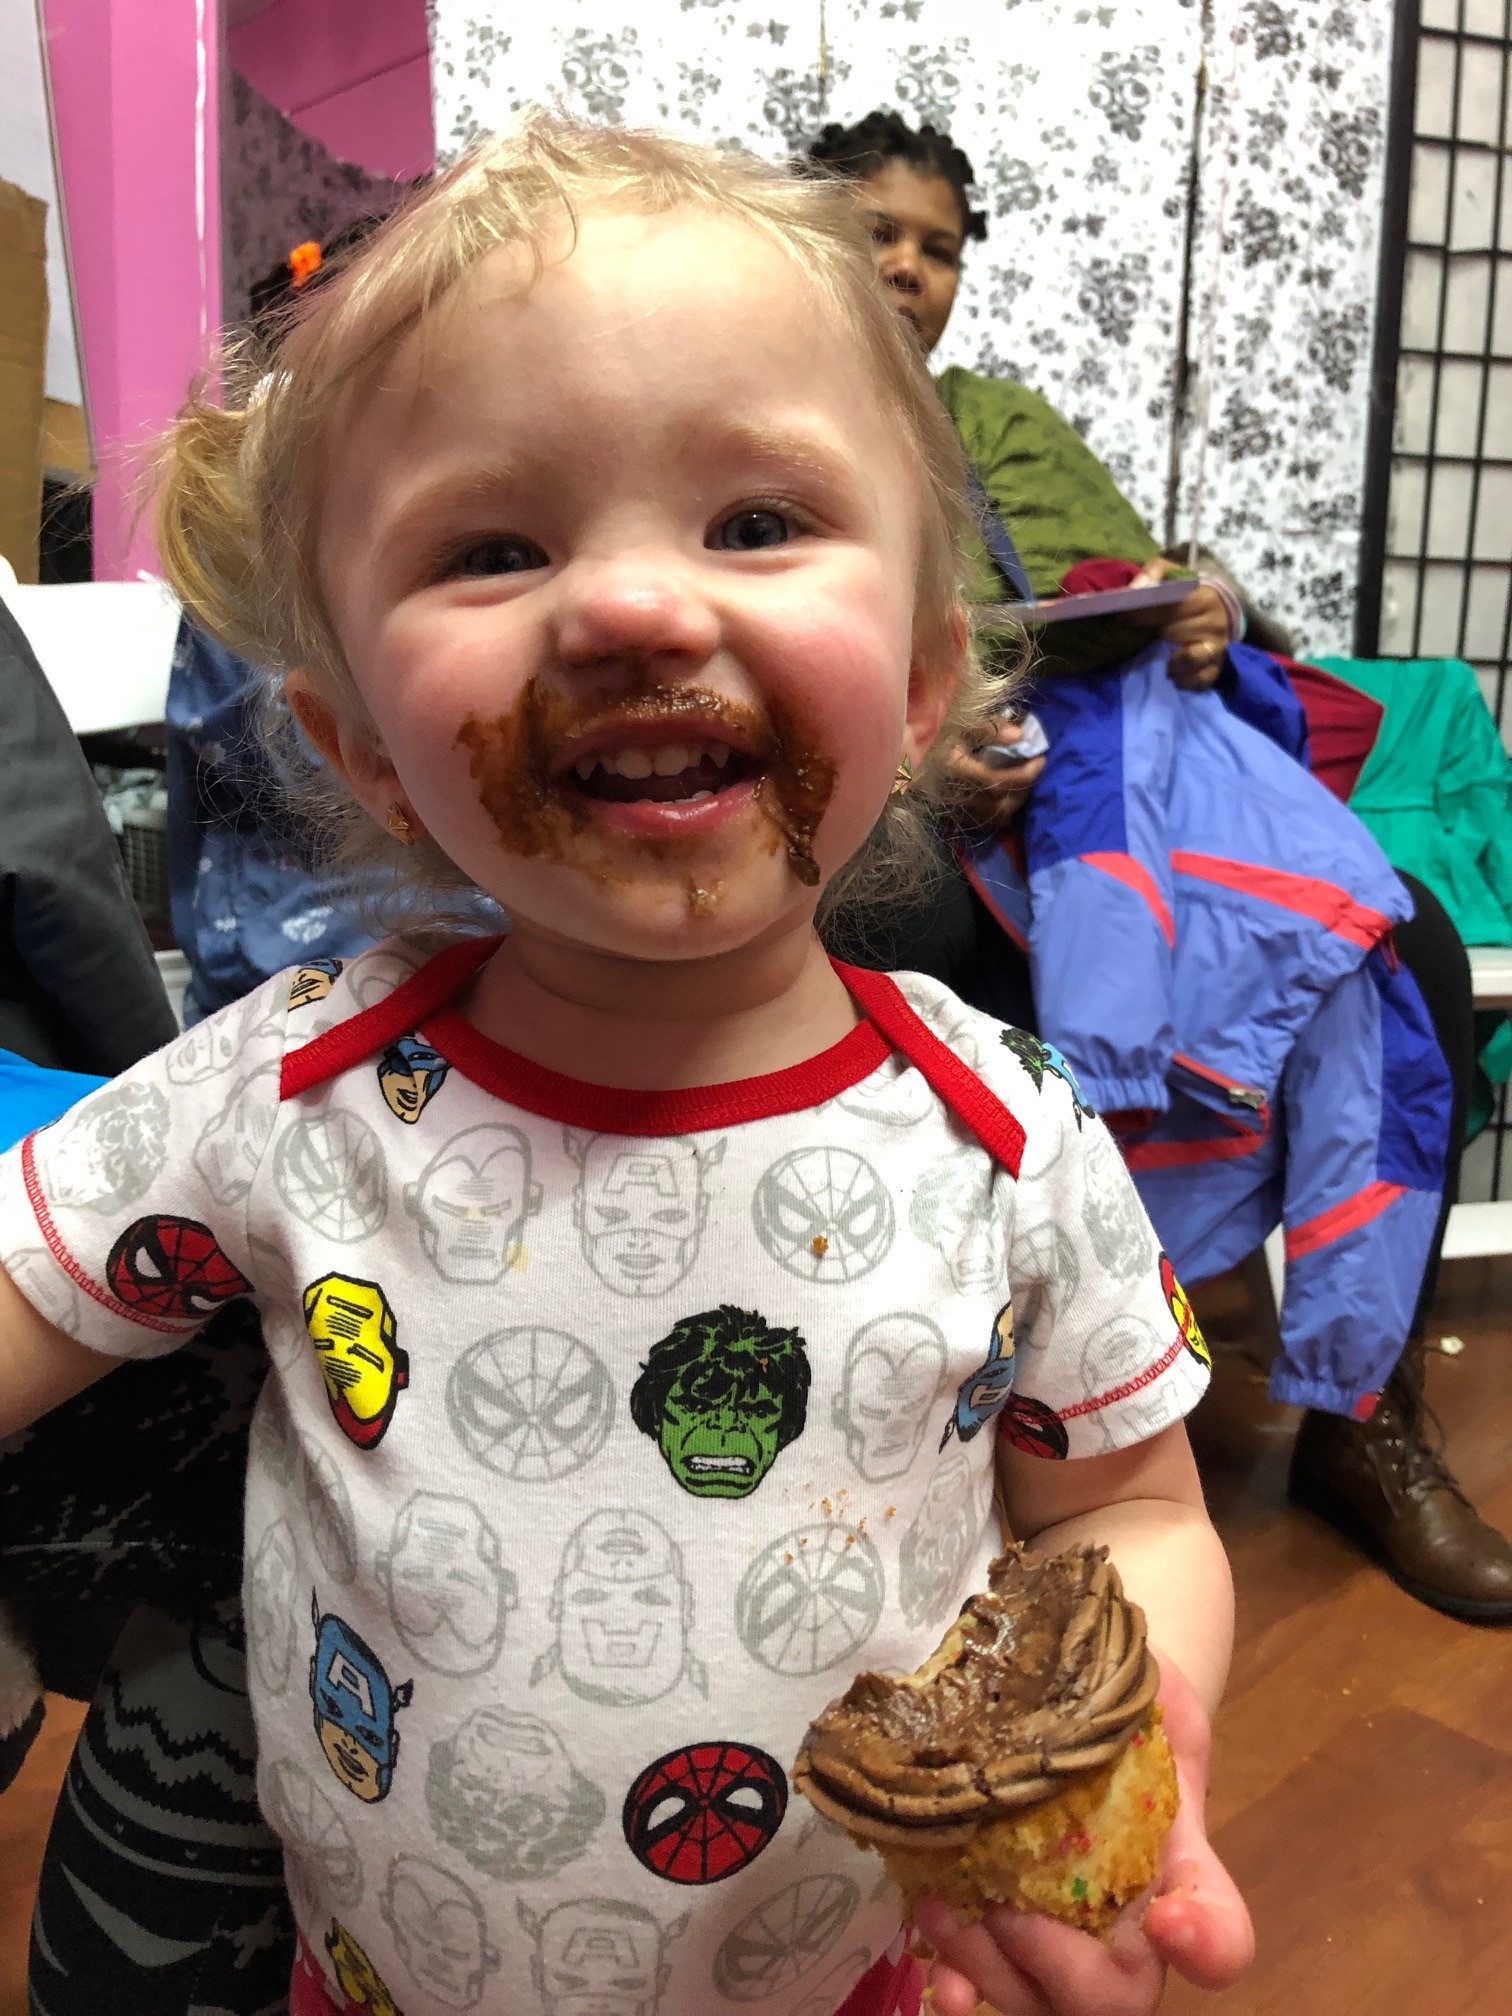 Hailey eating an Avengers Cupcake from Flour Love Sweets